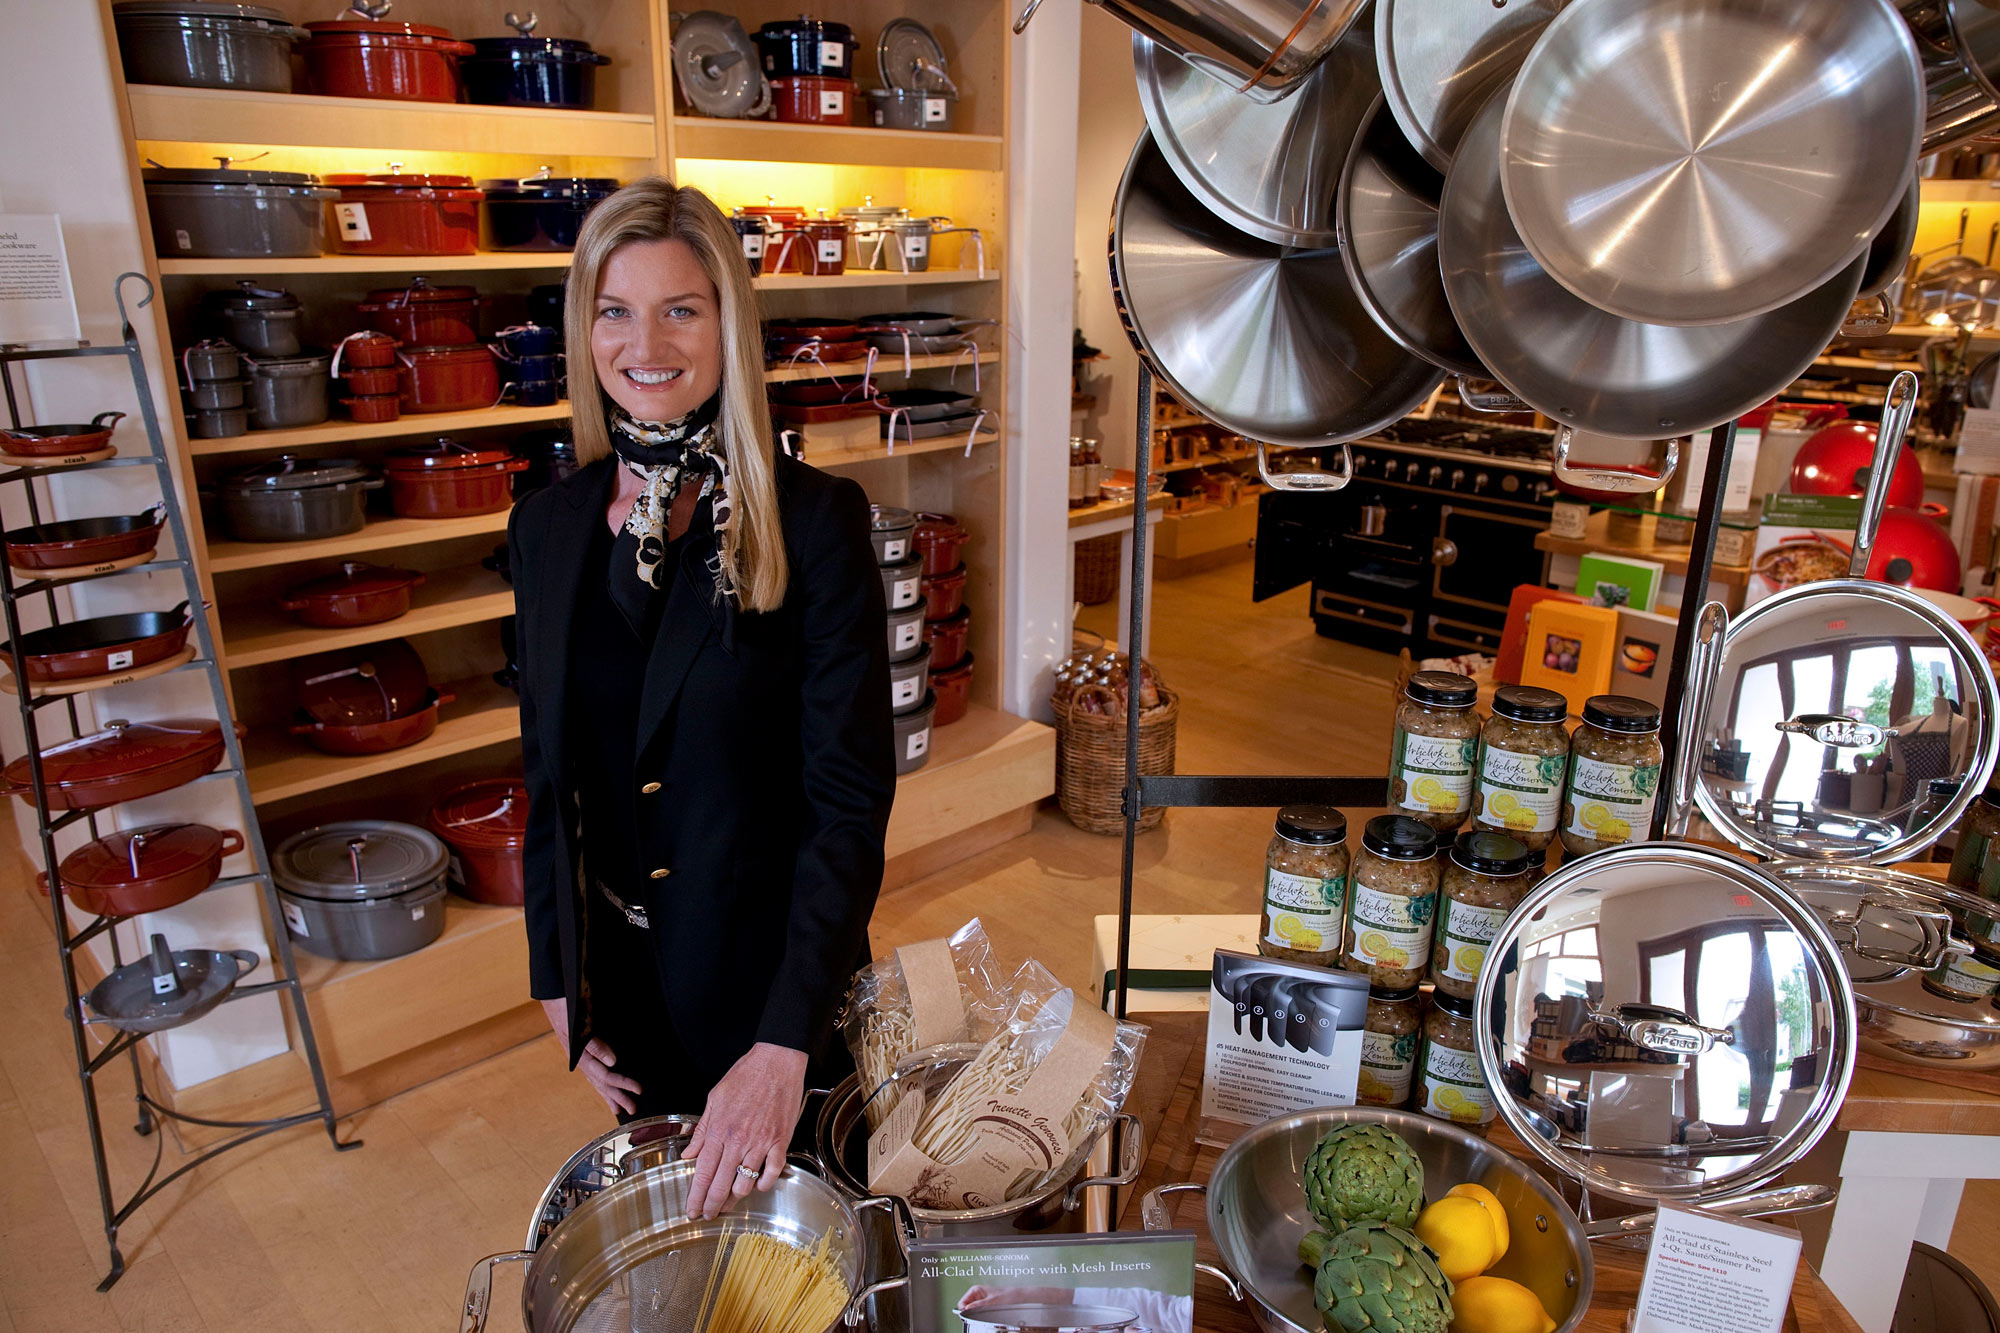 Williams-Sonoma Founder Tells New CEO Alber To 'Make It Better